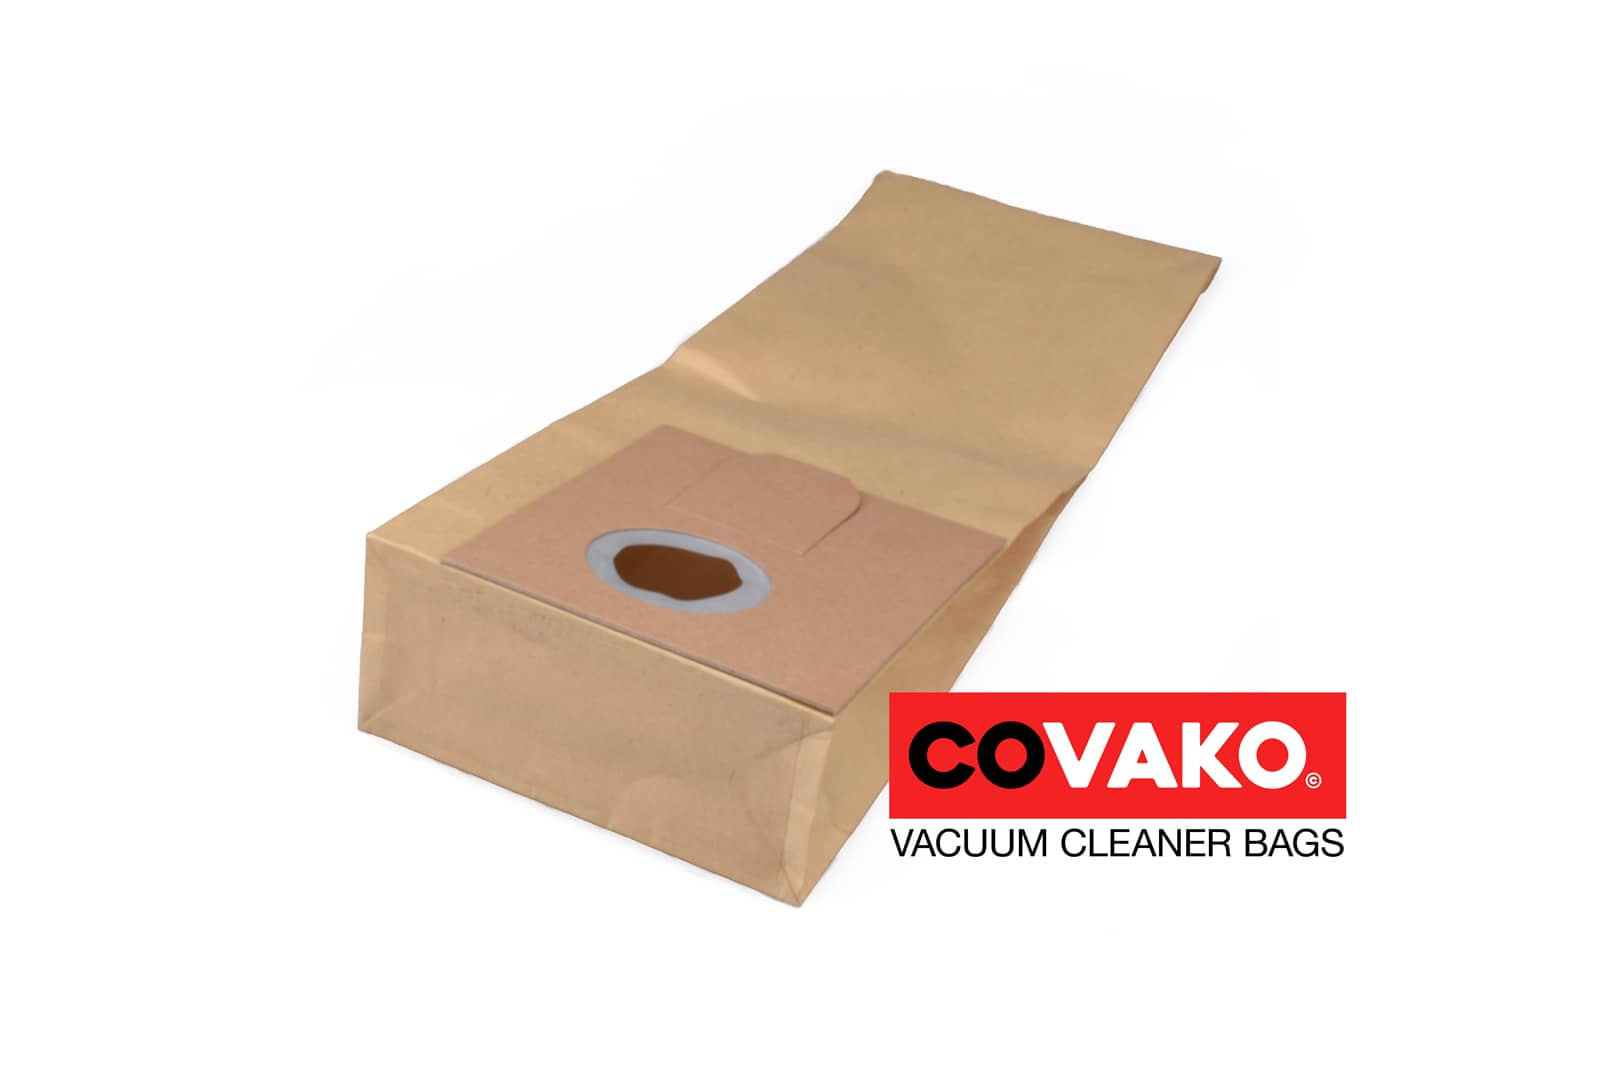 Oehme Otto UP 350 / Paper - Oehme Otto vacuum cleaner bags